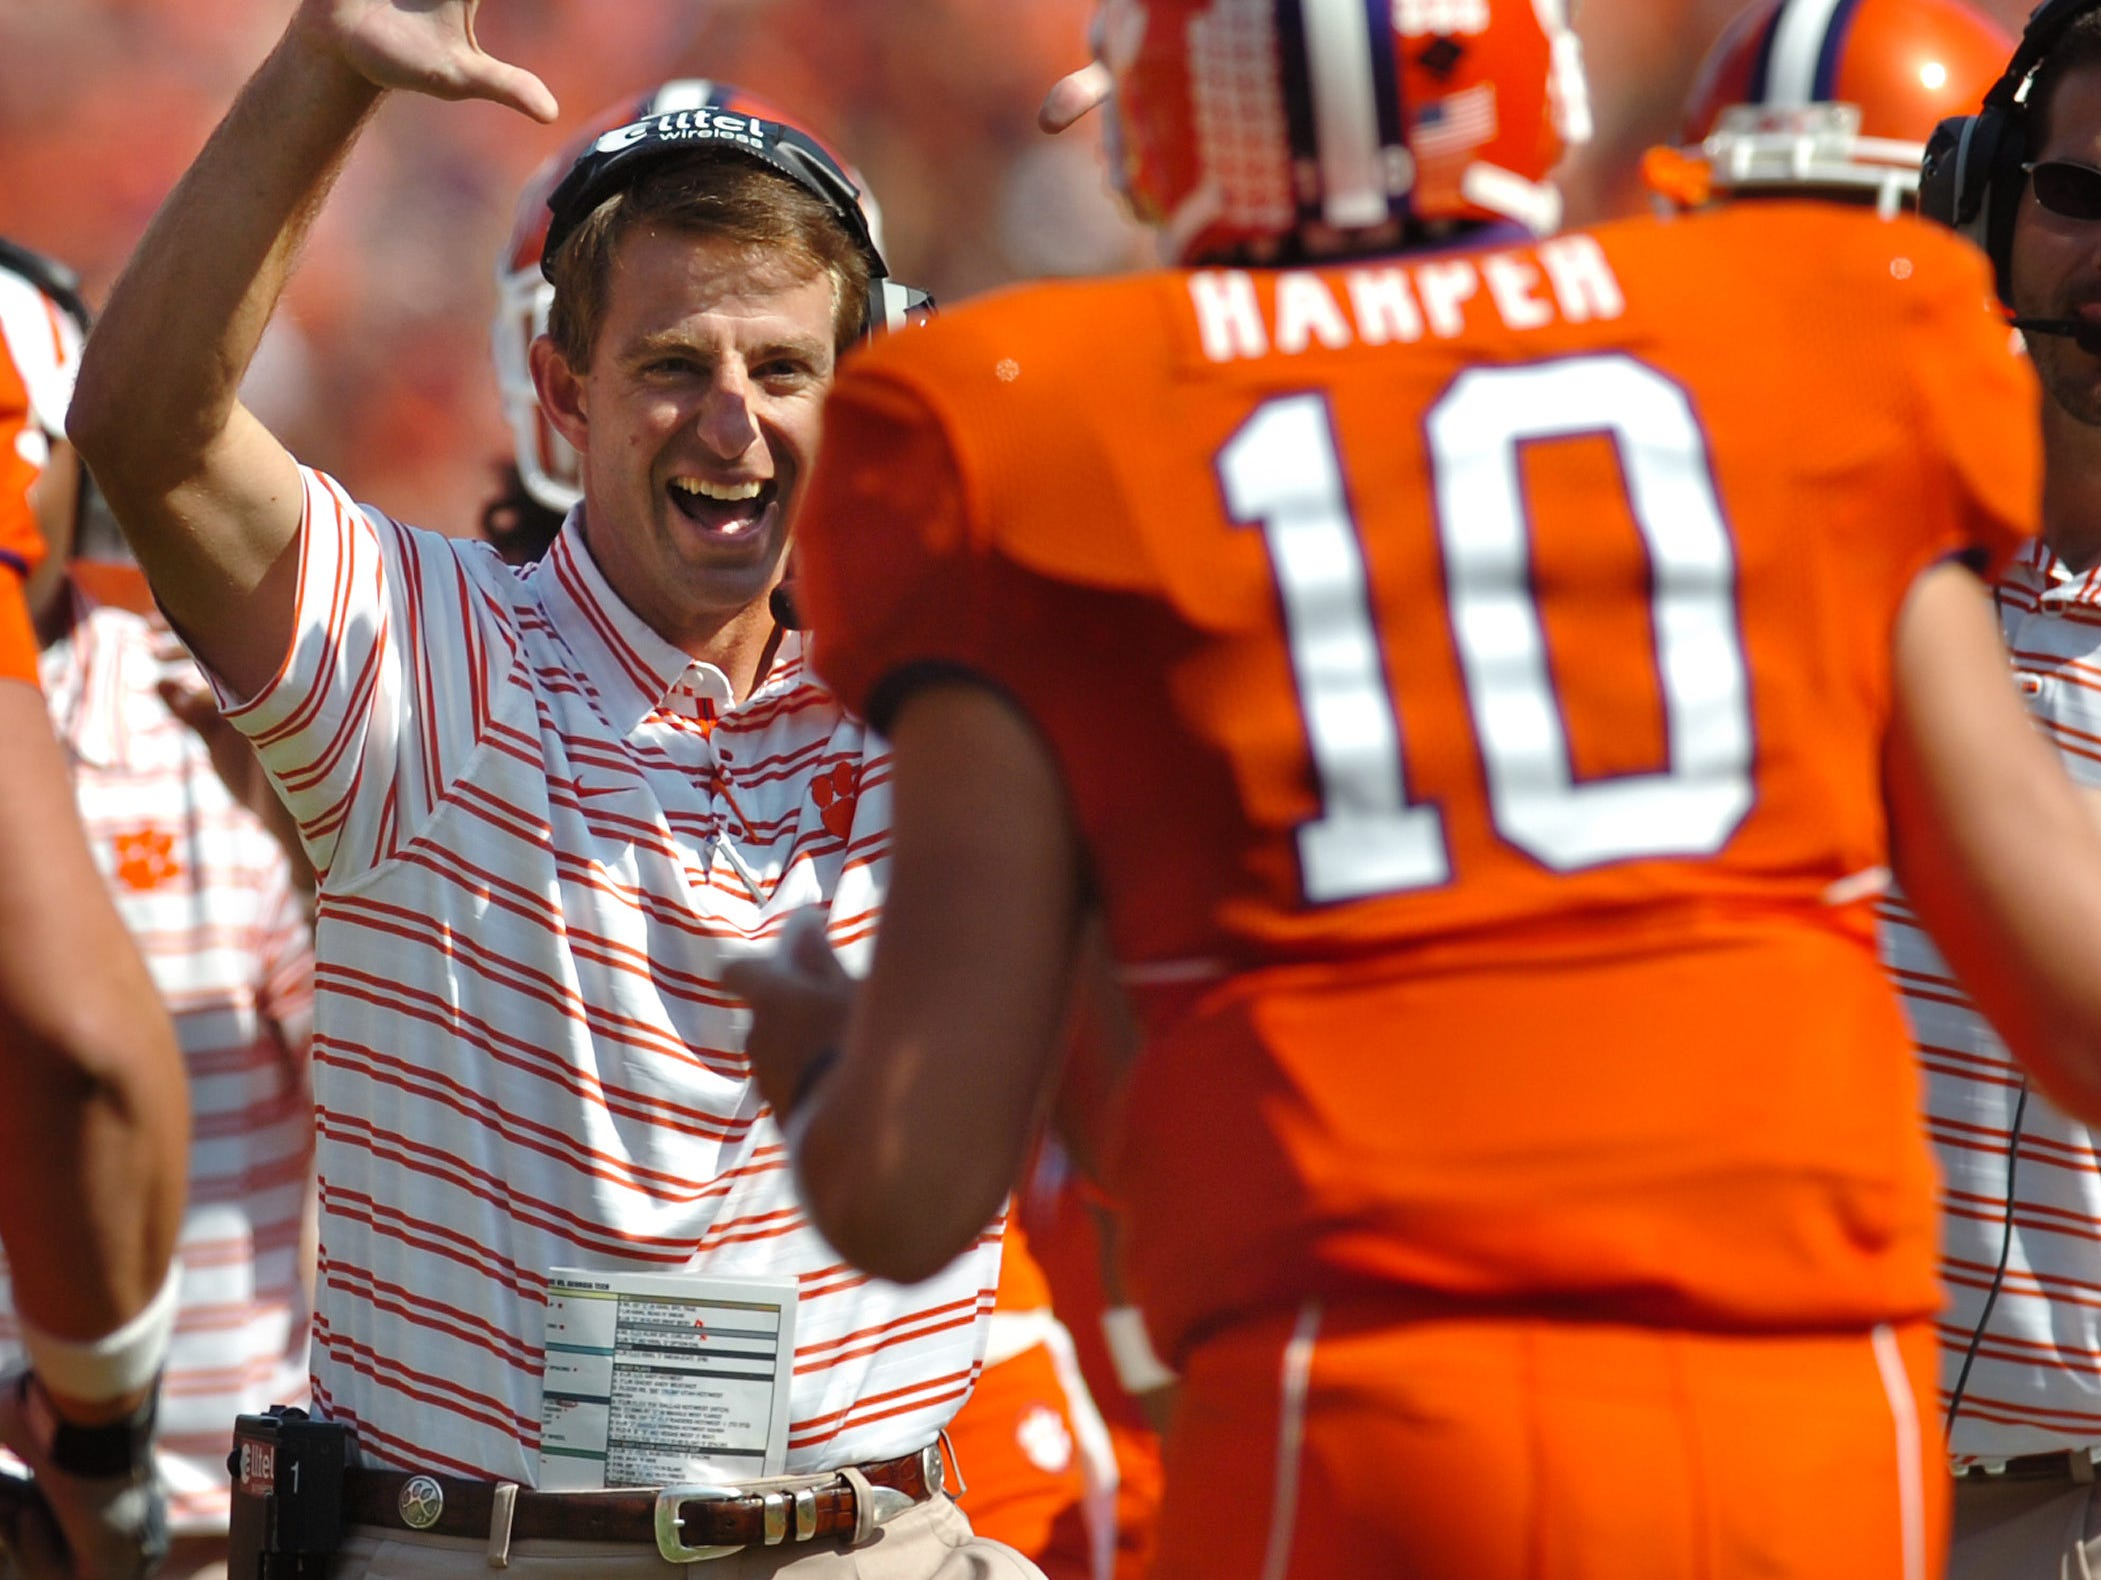 Clemson's  interim head Coach Dabo Swinney  celebrates with QB quarterback Cullen Harper (10) after Harper threw a 32 yard TD pass to Aaron Kelly (80) during the 3rd quarter against Georgia Tech Saturday, Oct. 18, 2008 at Clemson's Memorial Stadium.